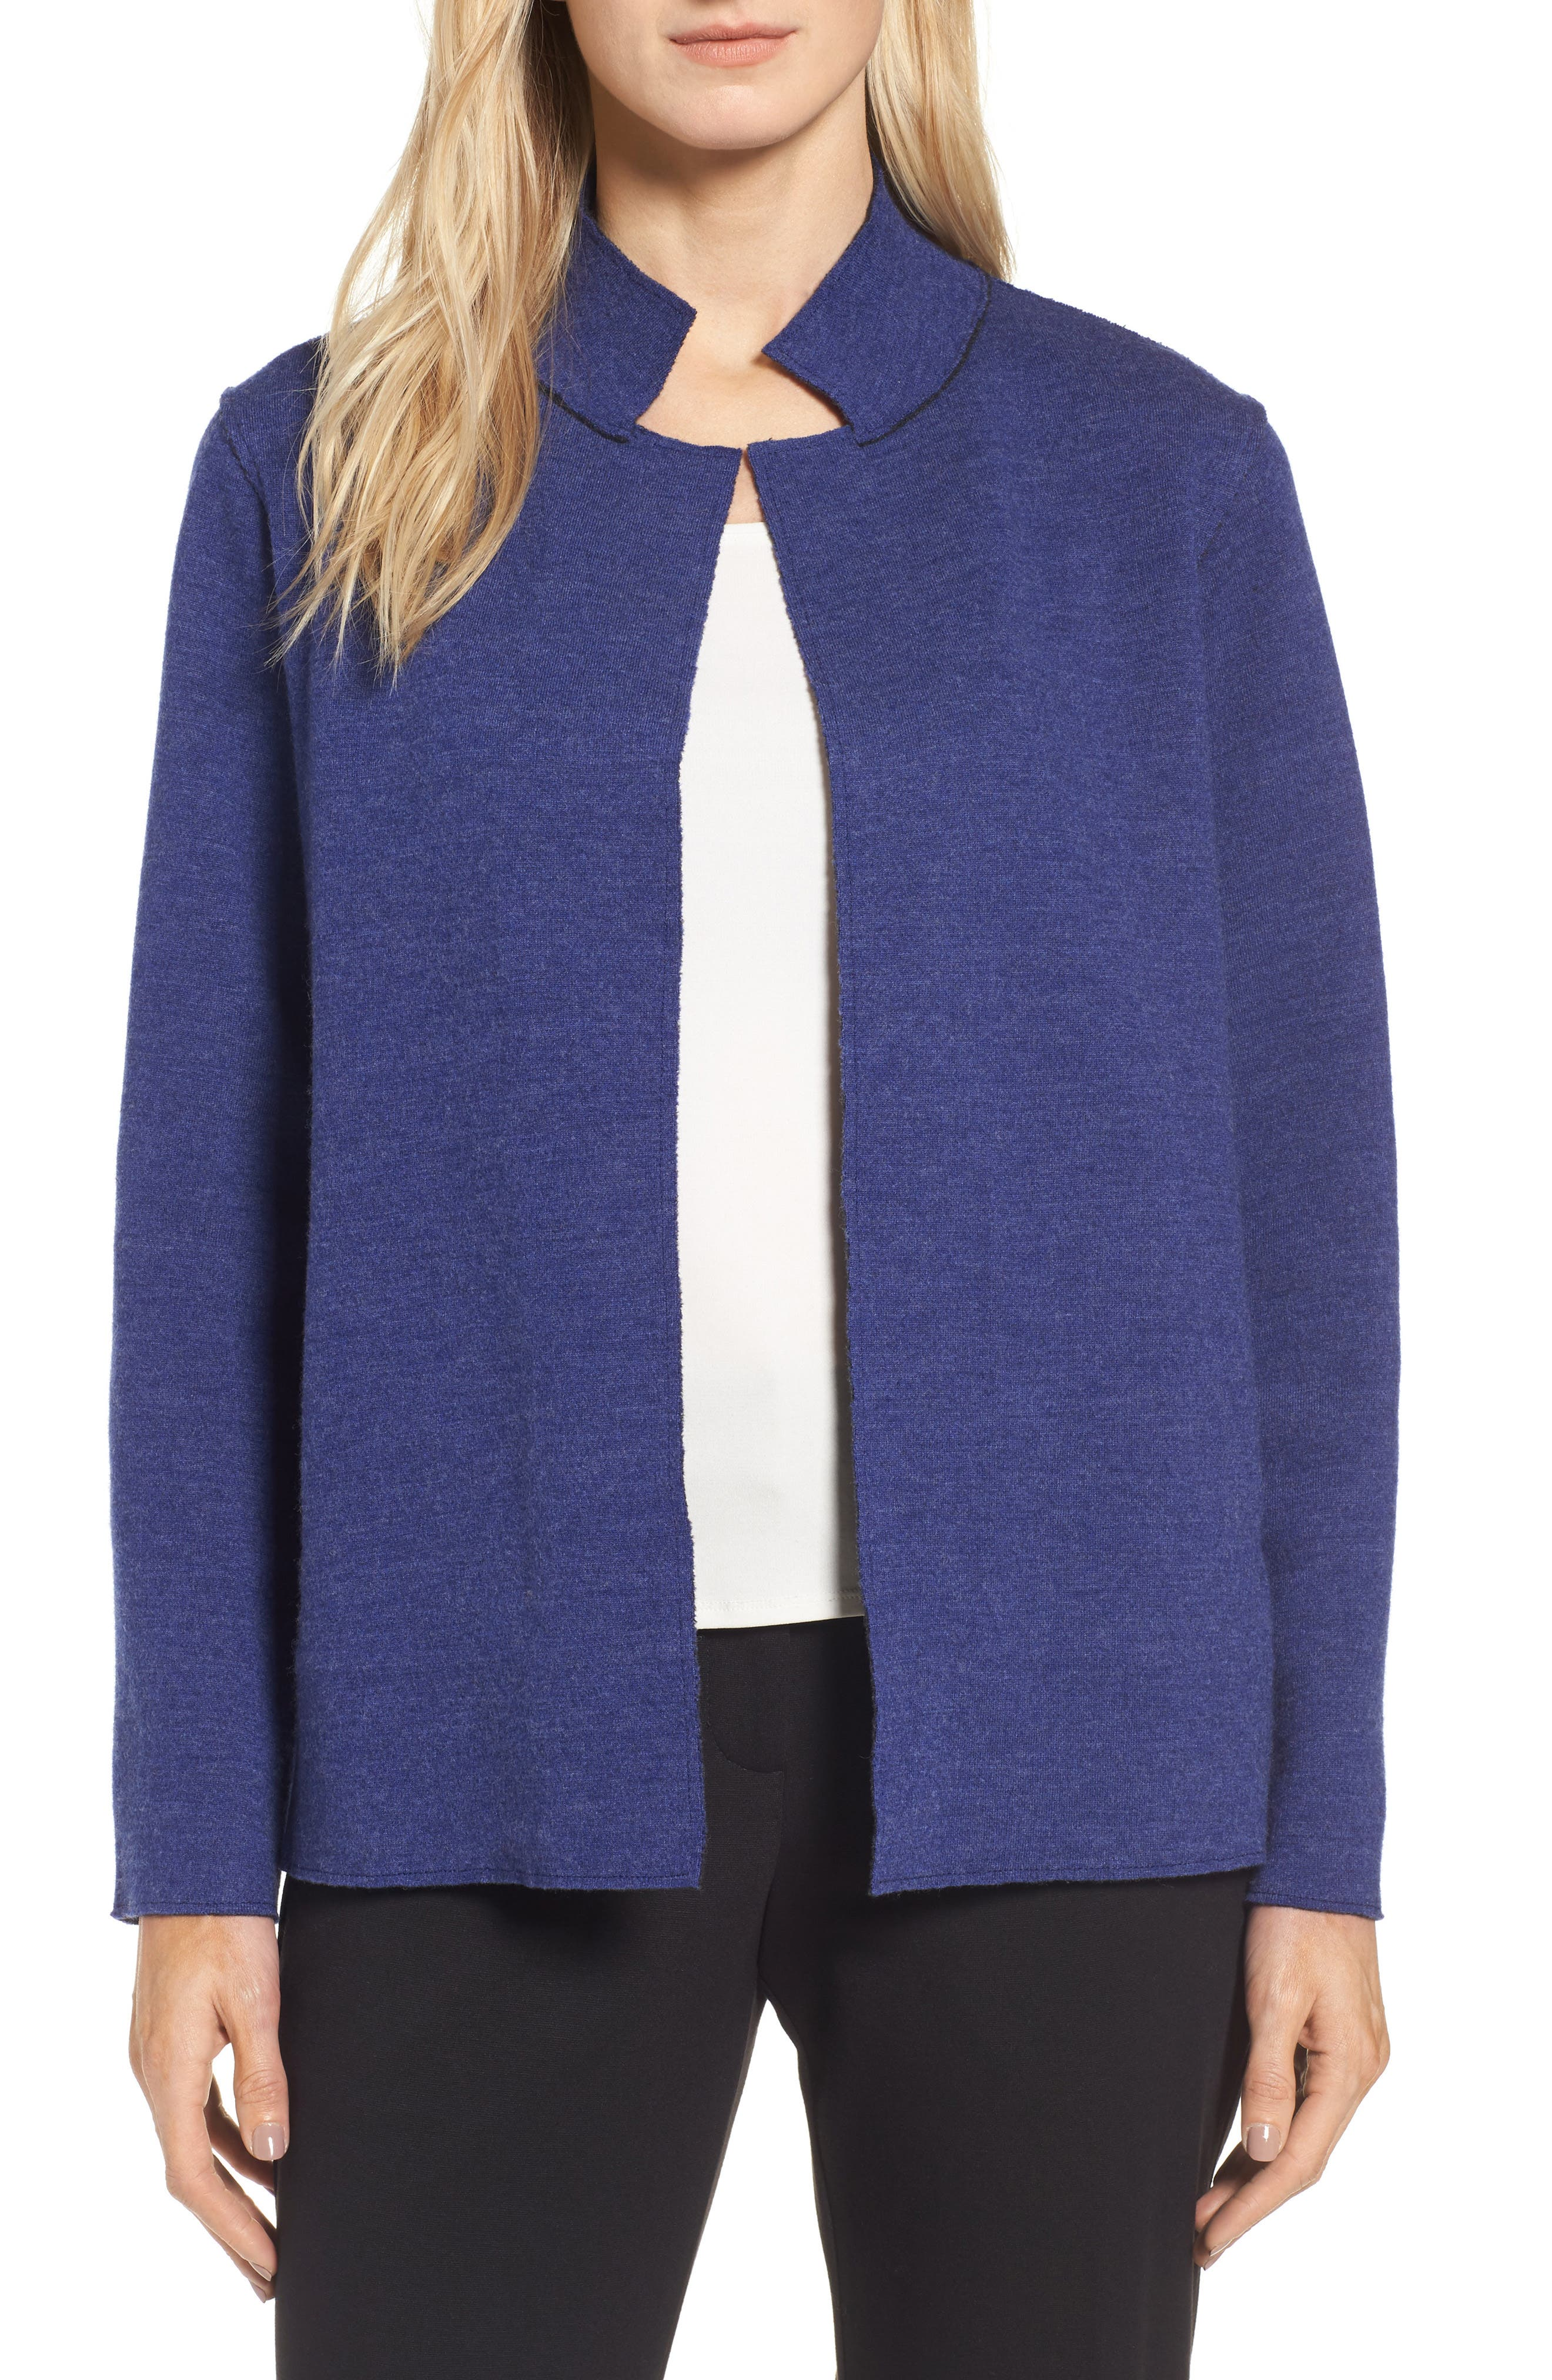 Eileen Fisher Merino Wool Blend Jacket (Regular & Petite)